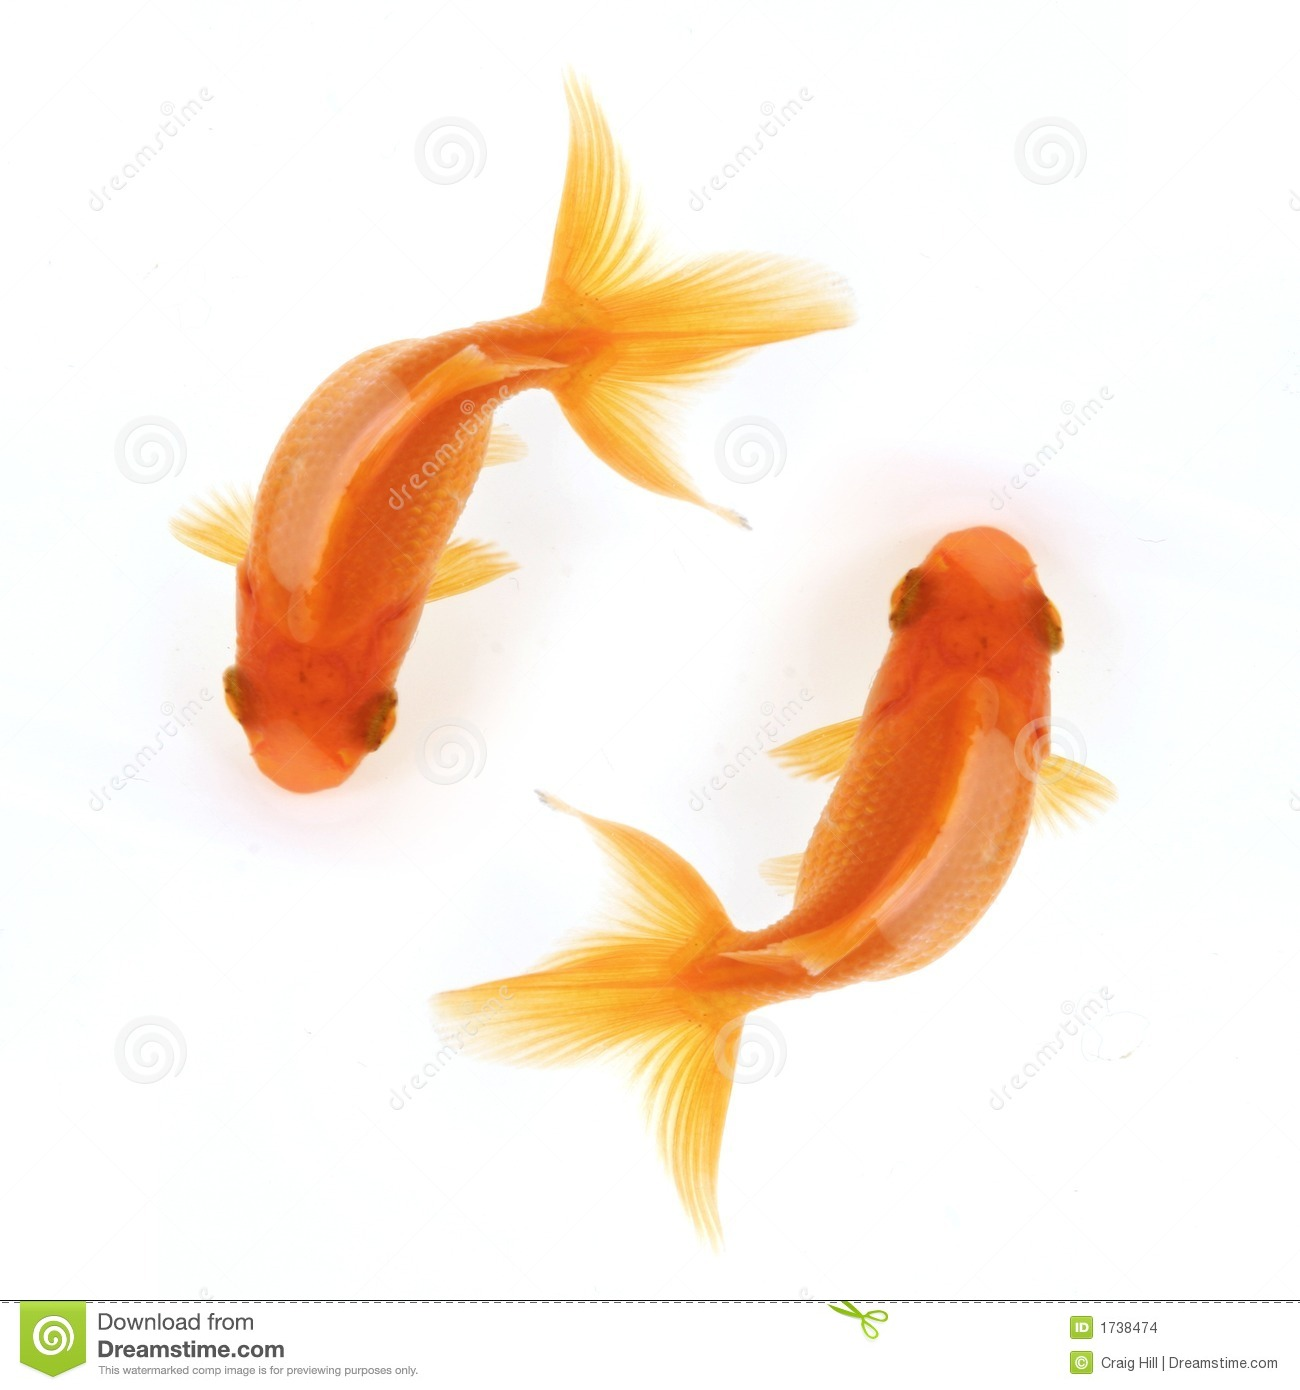 Two goldfish swimming in circles isolated on white, birdseye view.